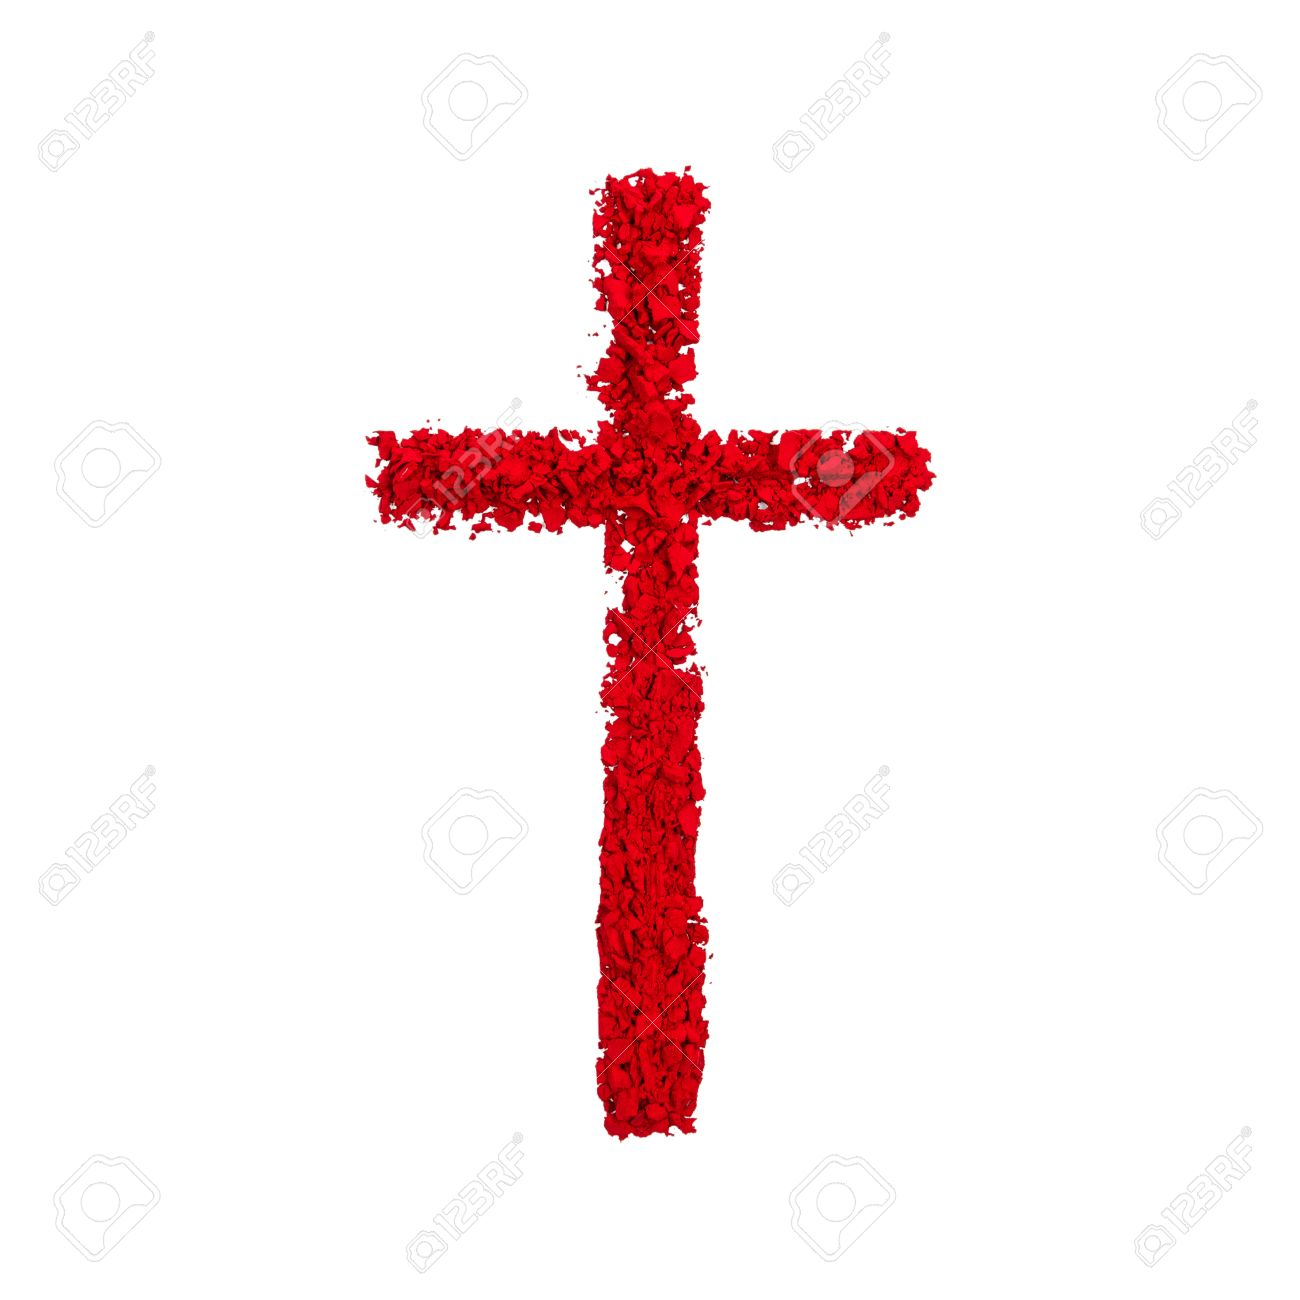 Christian Cross Made With Red Color Powder, Isolated On A White ...